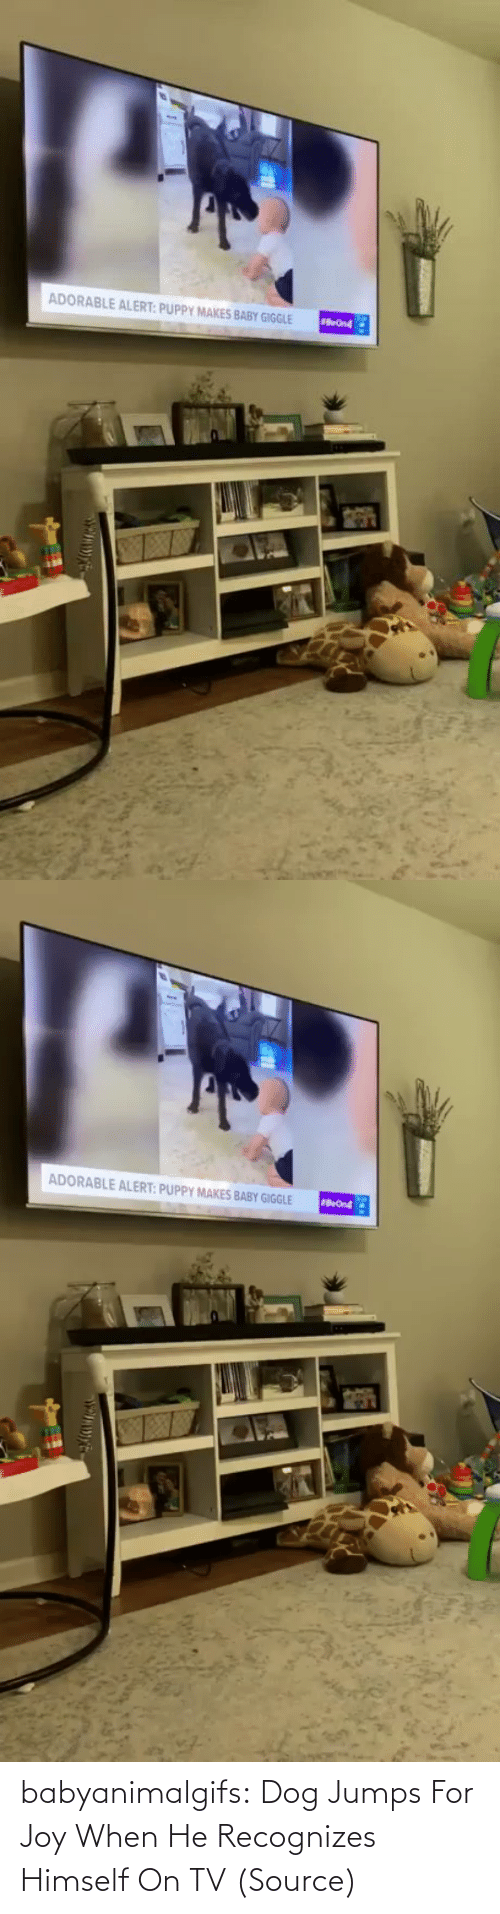 When He: babyanimalgifs:  Dog Jumps For Joy When He Recognizes Himself On TV (Source)